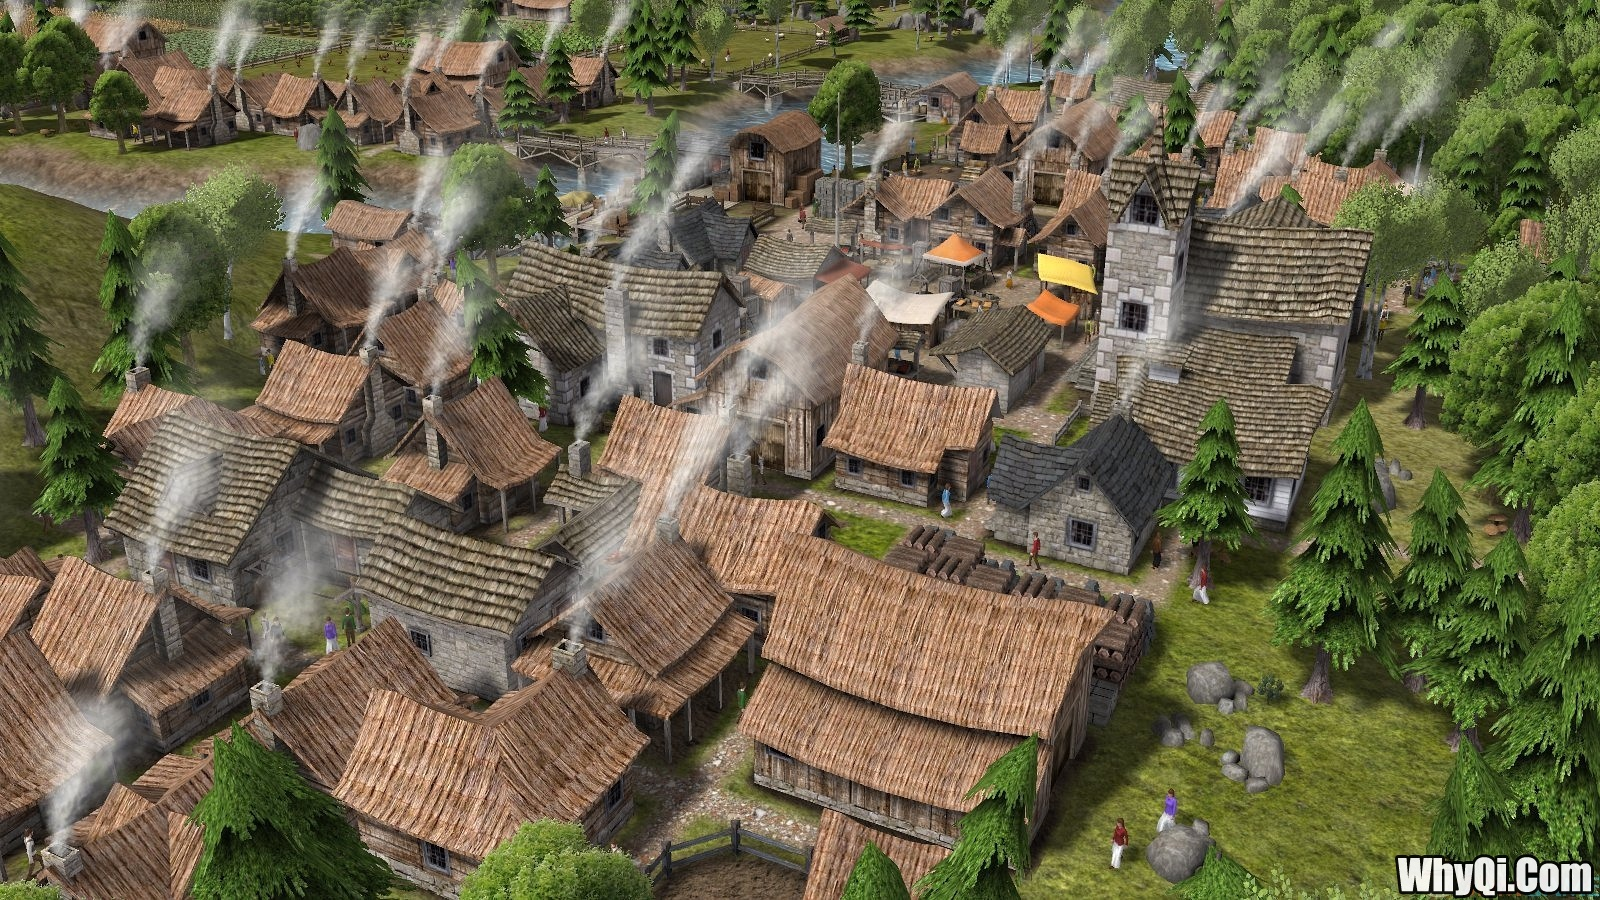 PC-[放逐之城]Banished 64位+32位游戏CE修改下载 [作弊器] [修改器] [Cheat Engine] - 第3张  | 歪奇